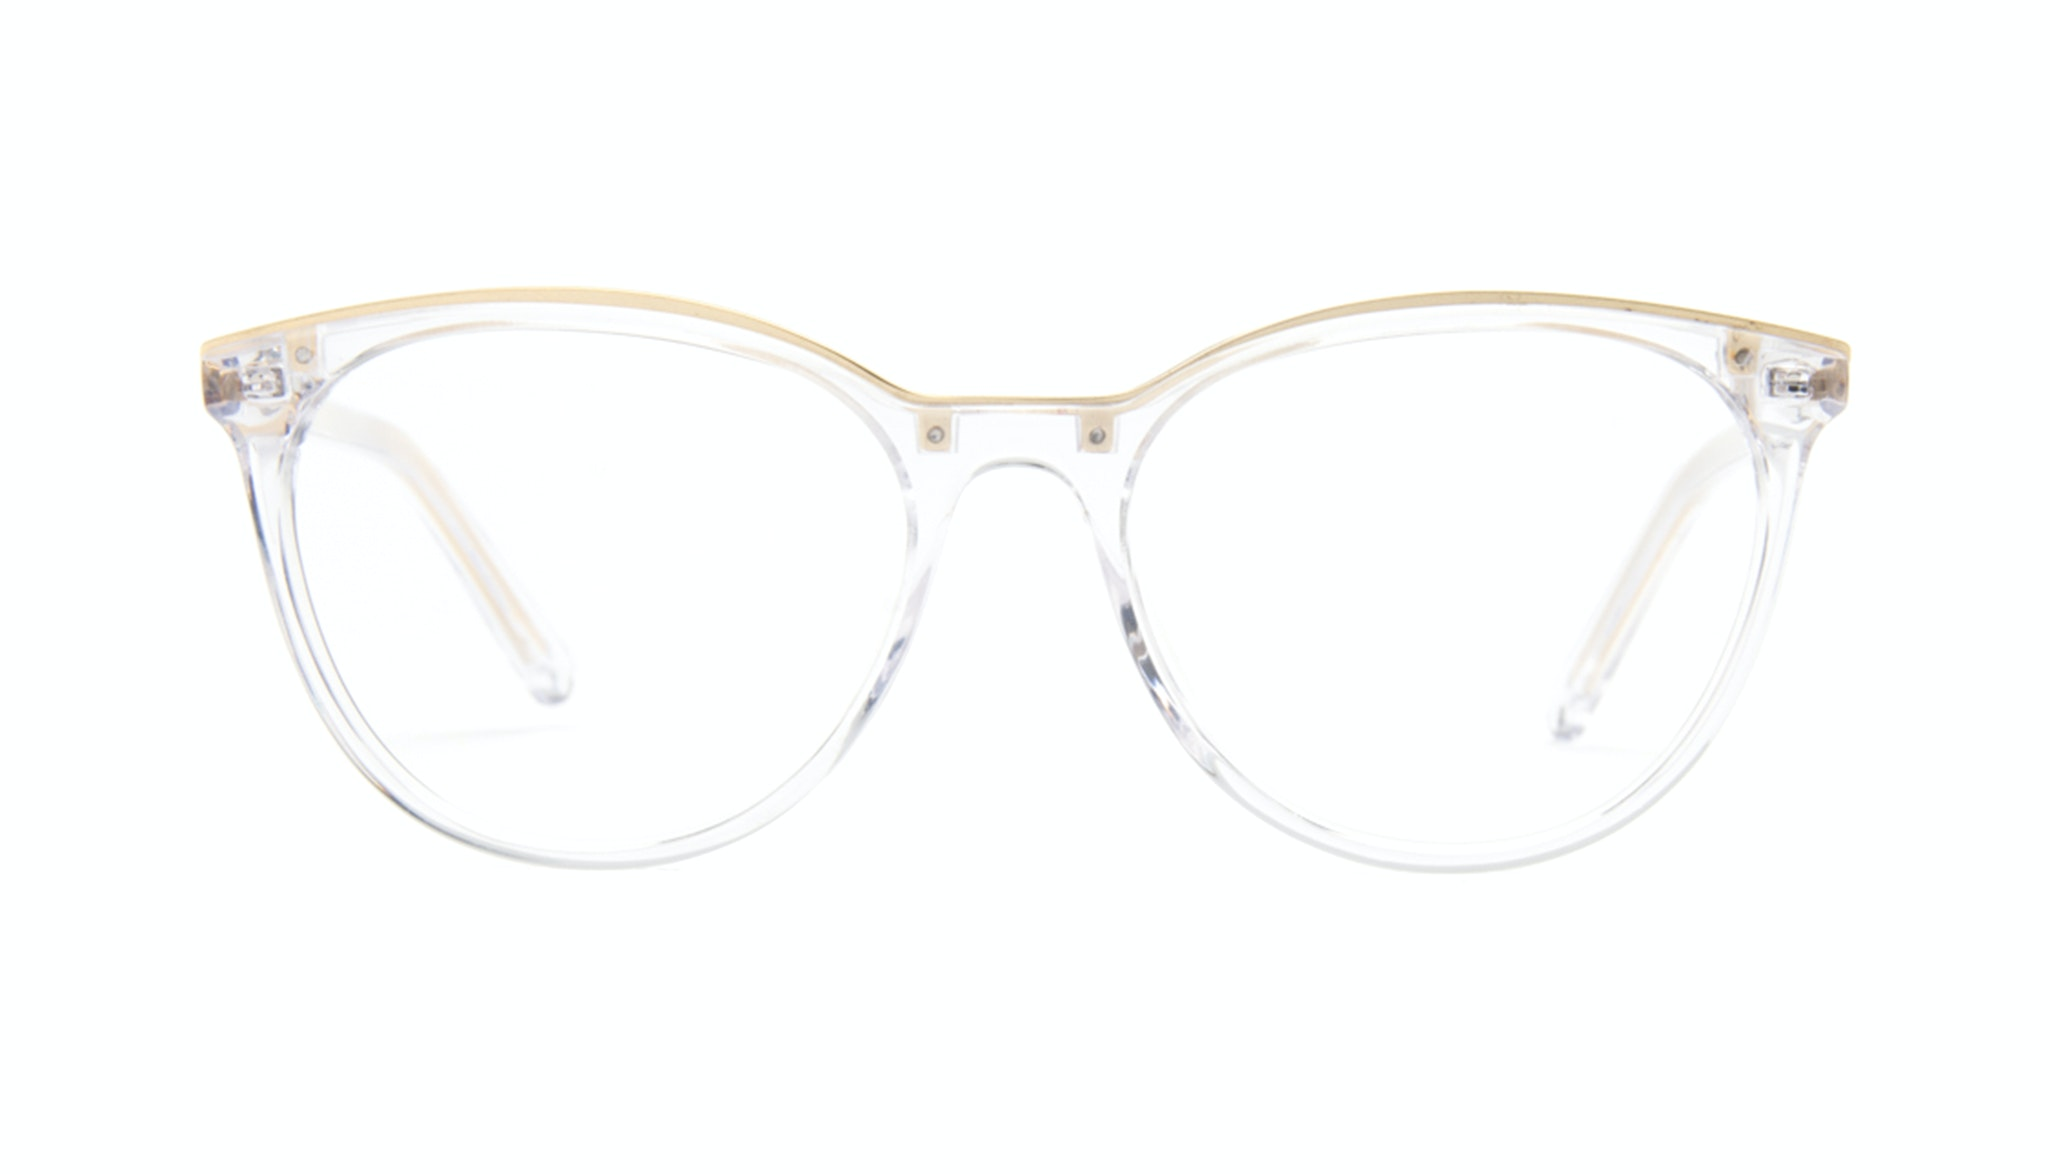 Affordable Fashion Glasses Round Eyeglasses Women Gypsy Diamond Gold